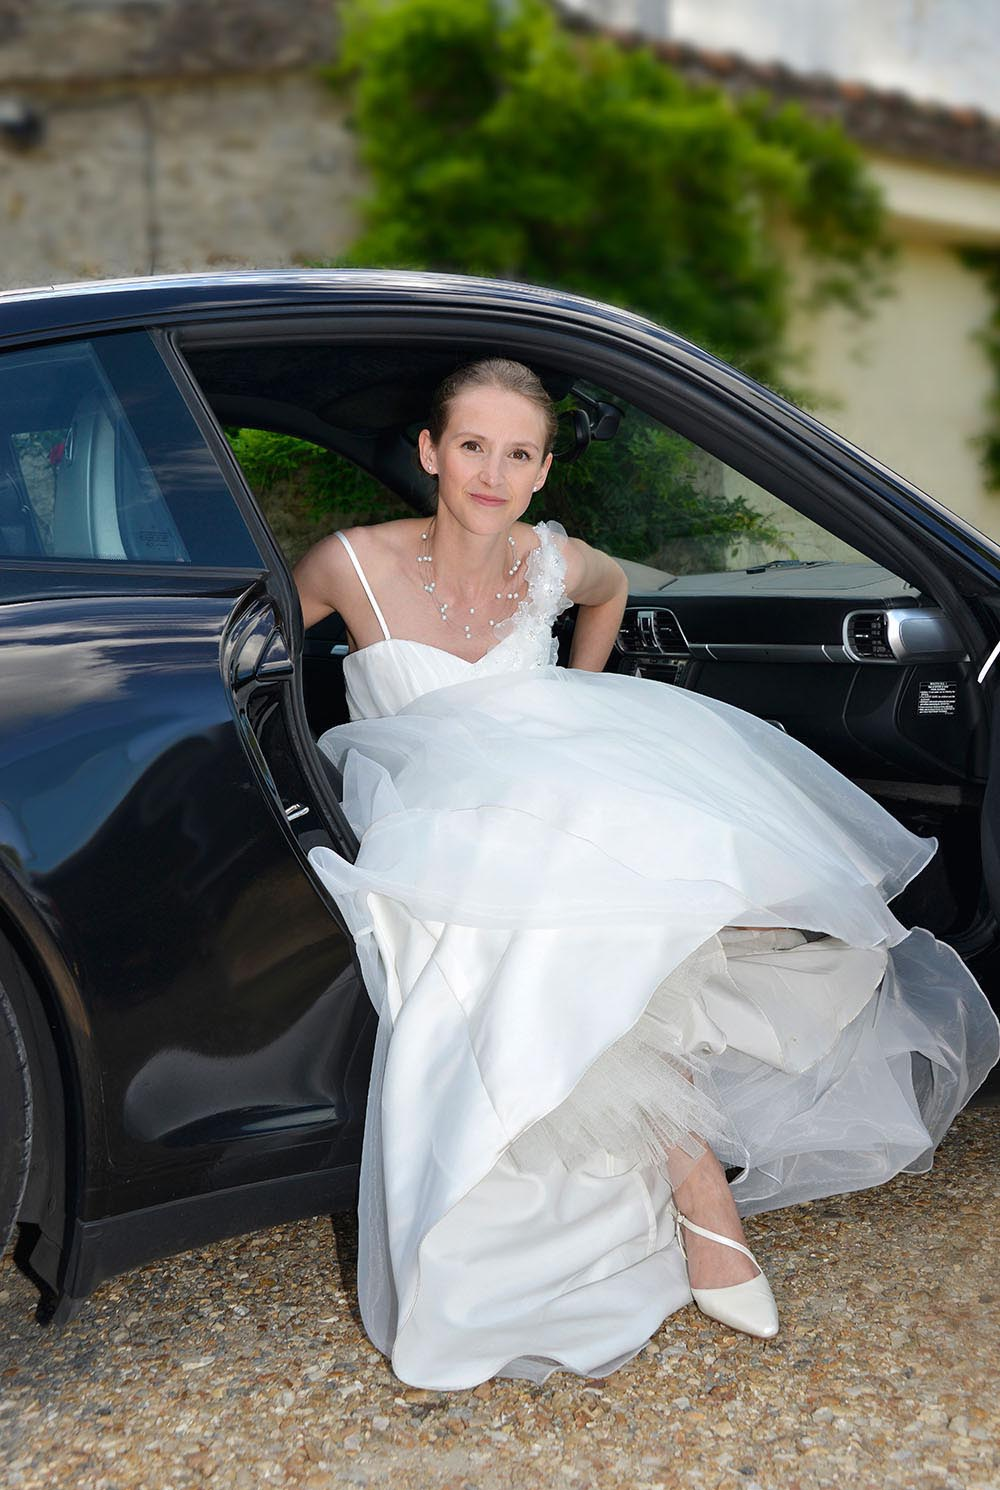 Bride in wedding dress, getting out of car